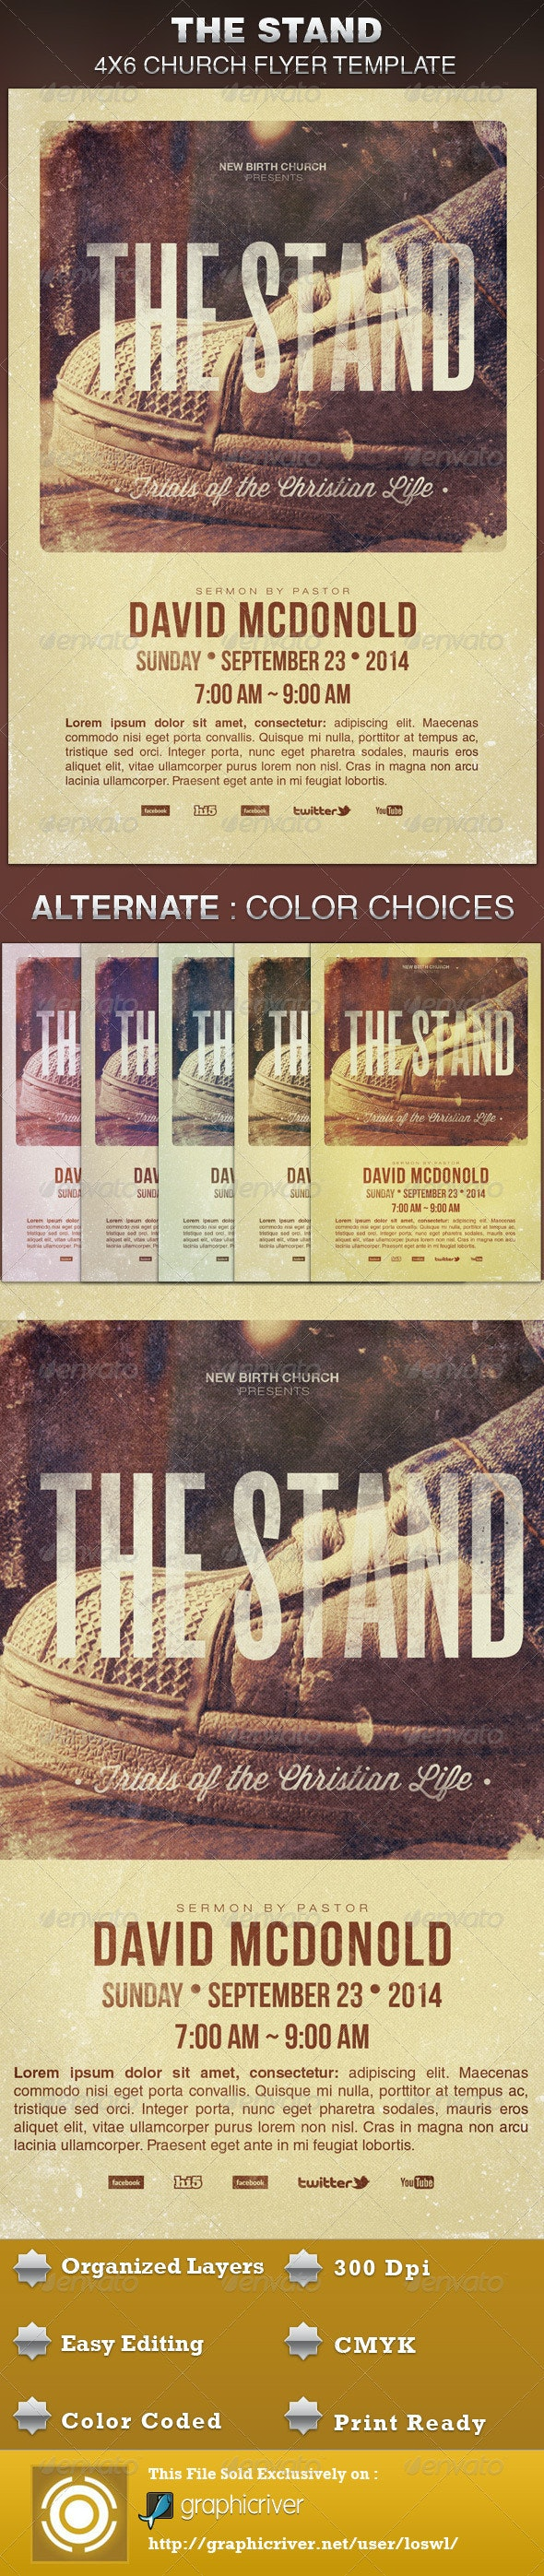 The Stand Church Flyer Template - Church Flyers